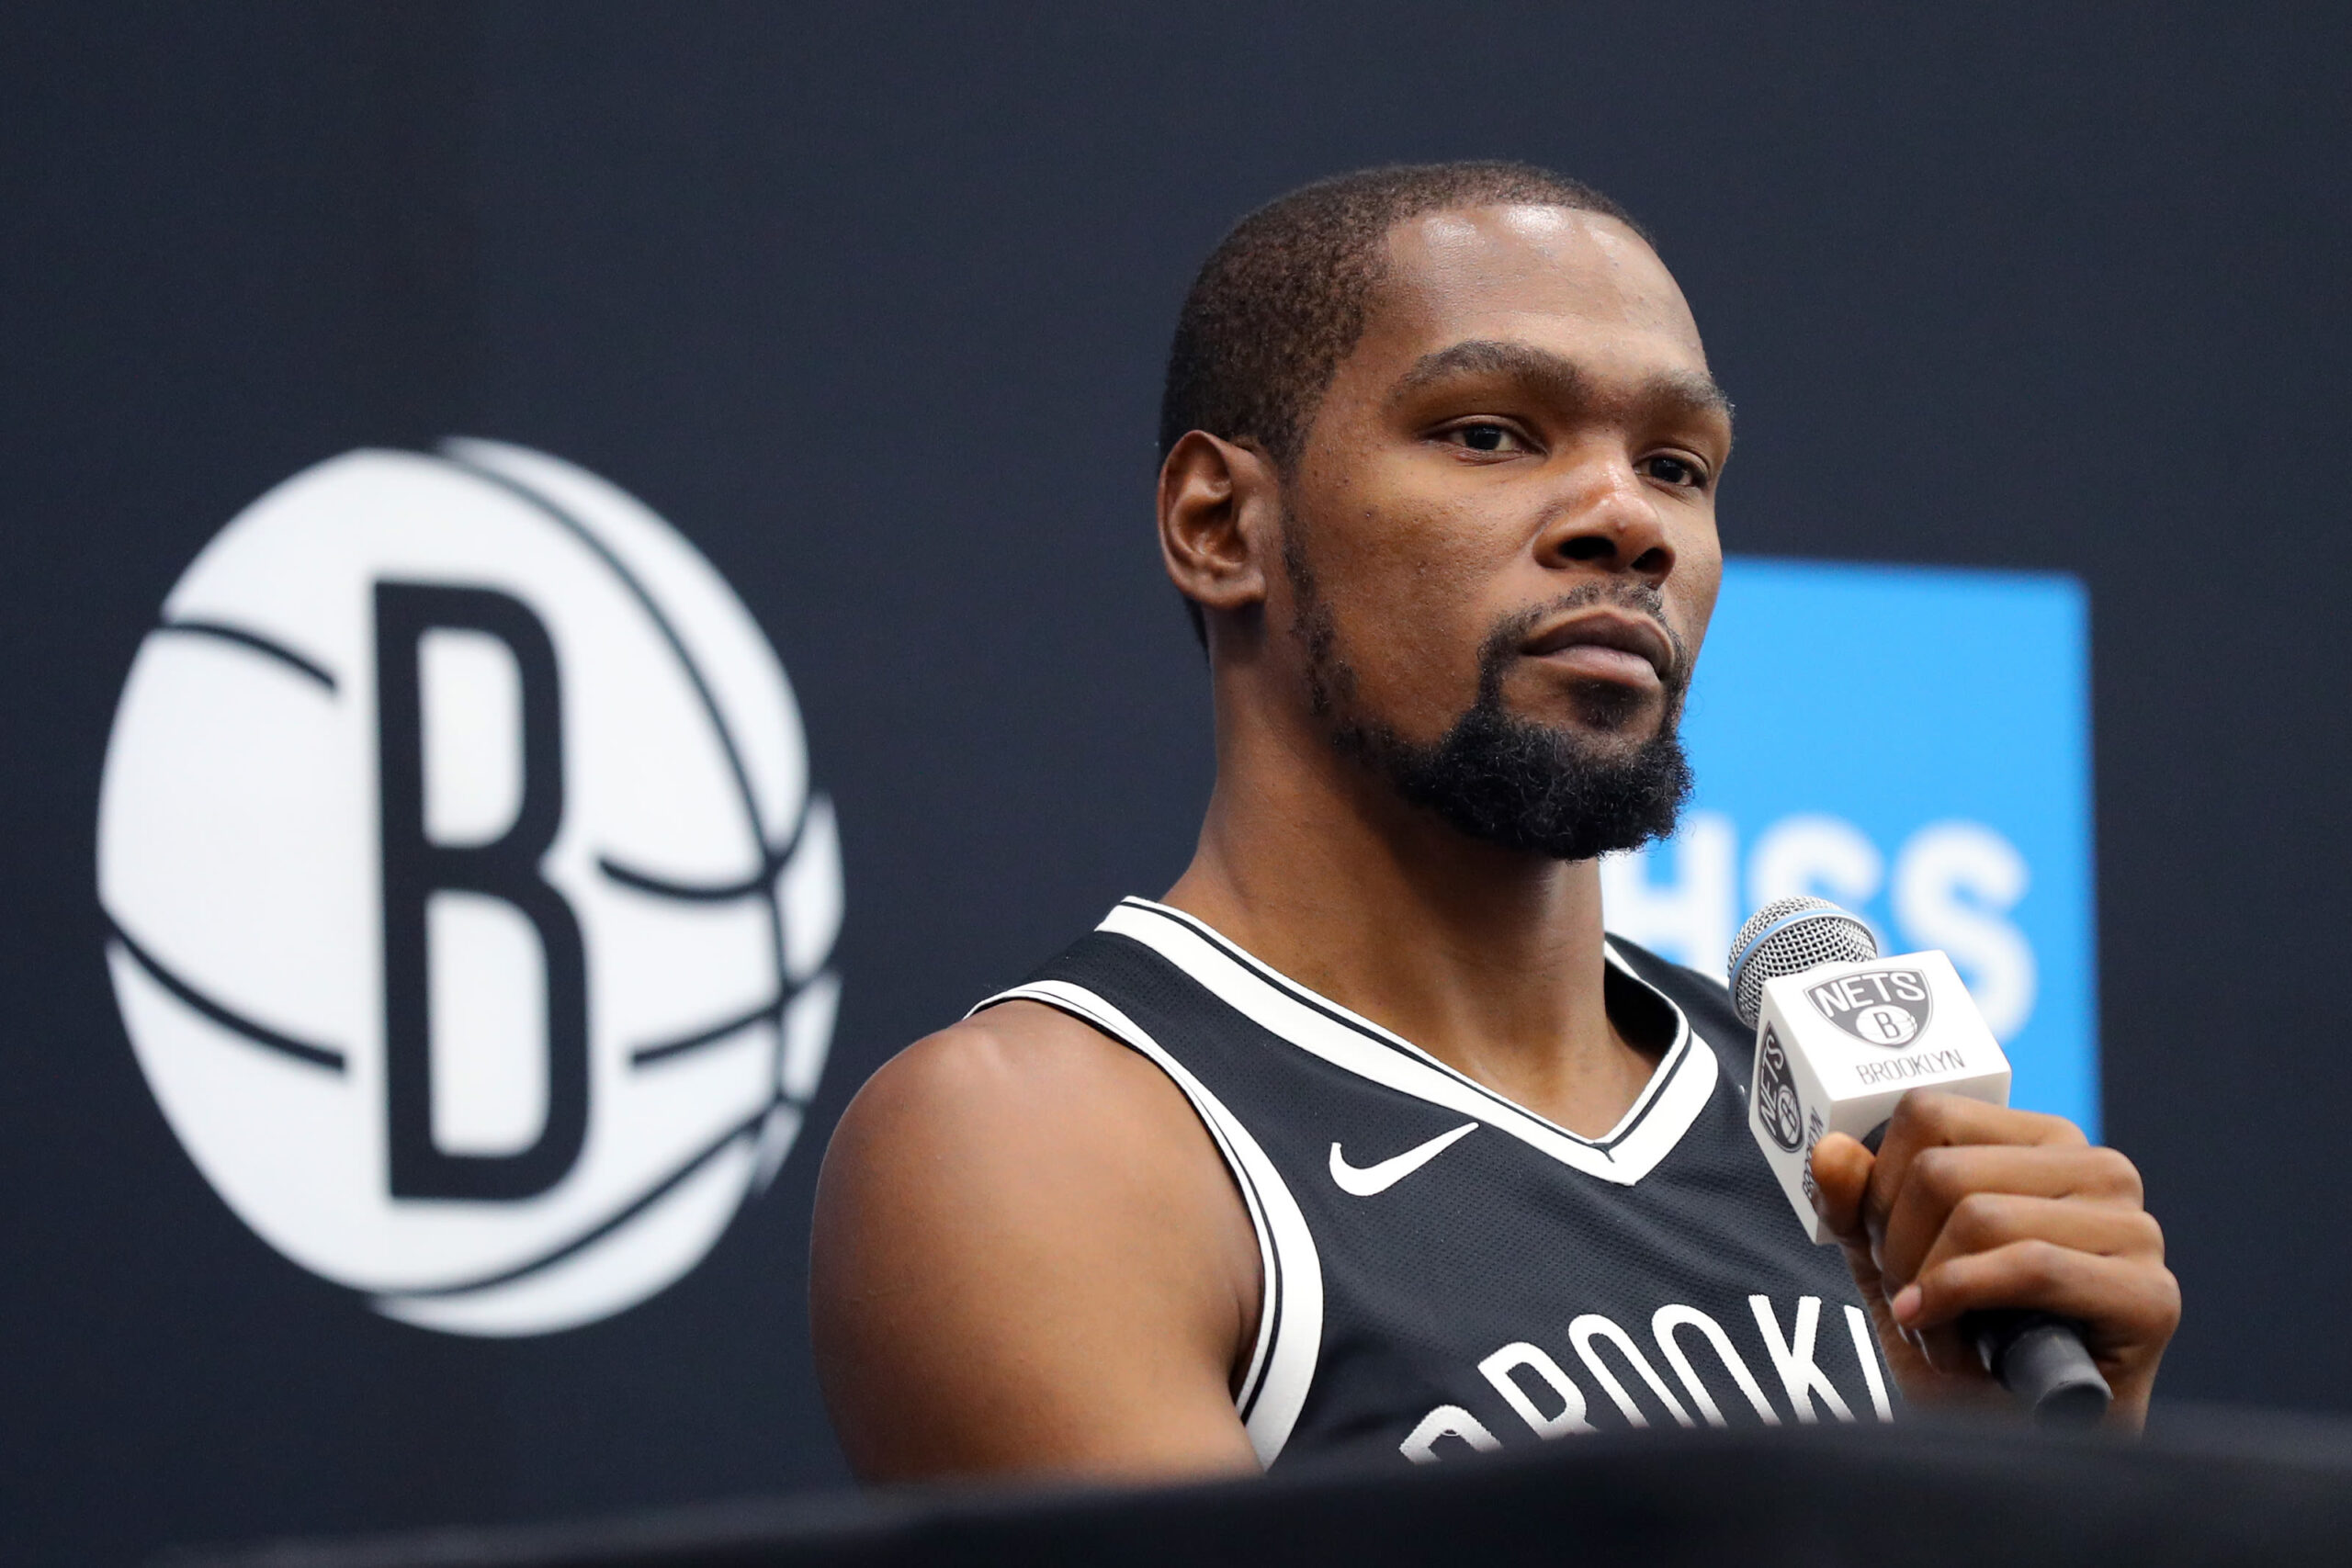 Kevin Durant Enters Seven-Day Quarantine After COVID Exposure